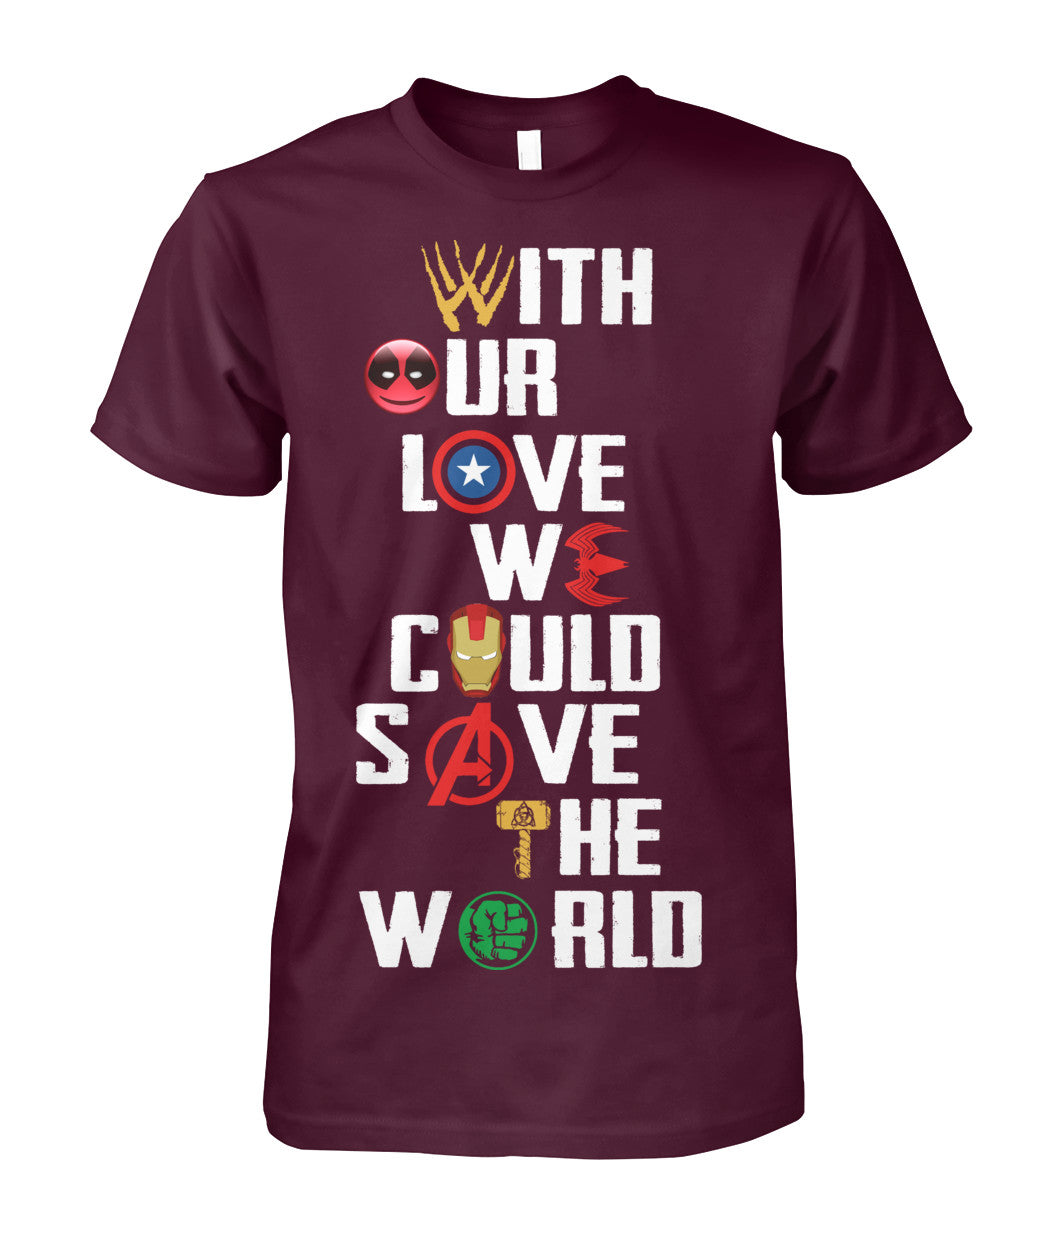 Save the world Marvel shirt 2018-Short Sleeves - AllGolfUSA.COM